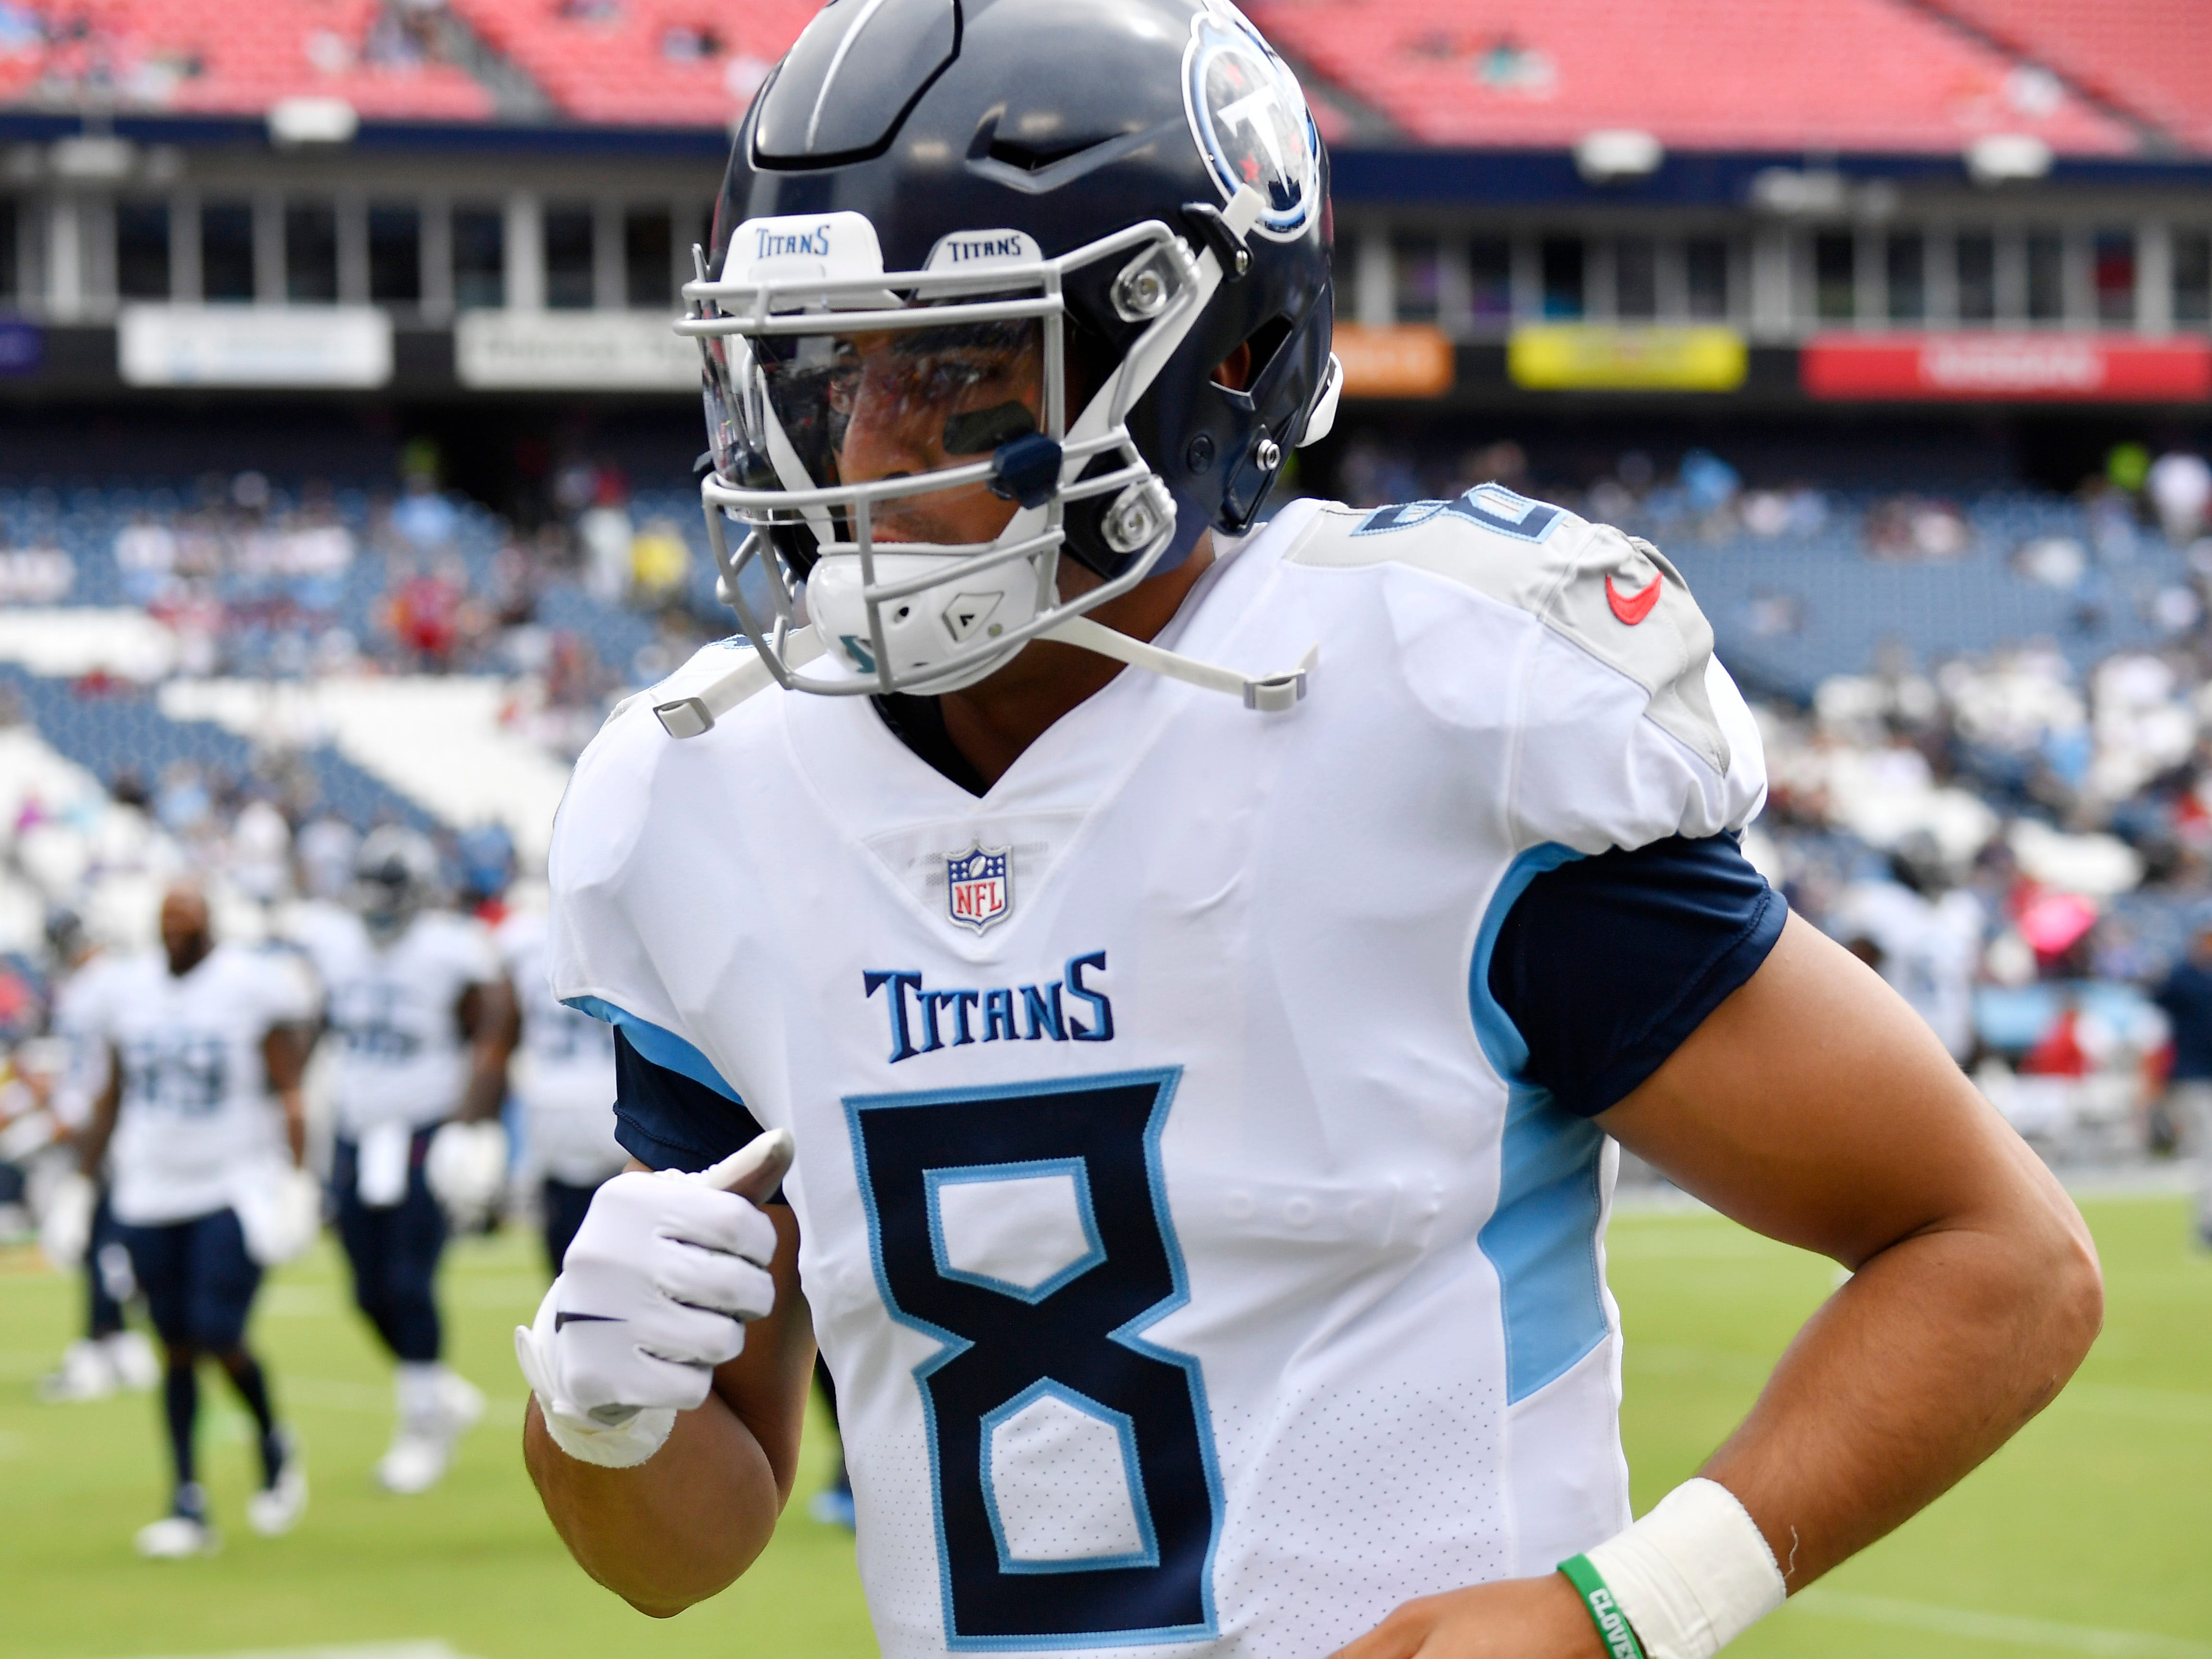 Titans quarterback Marcus Mariota (8) jogs on the field before the game at Nissan Stadium Sunday, Sept. 16, 2018, in Nashville, Tenn.